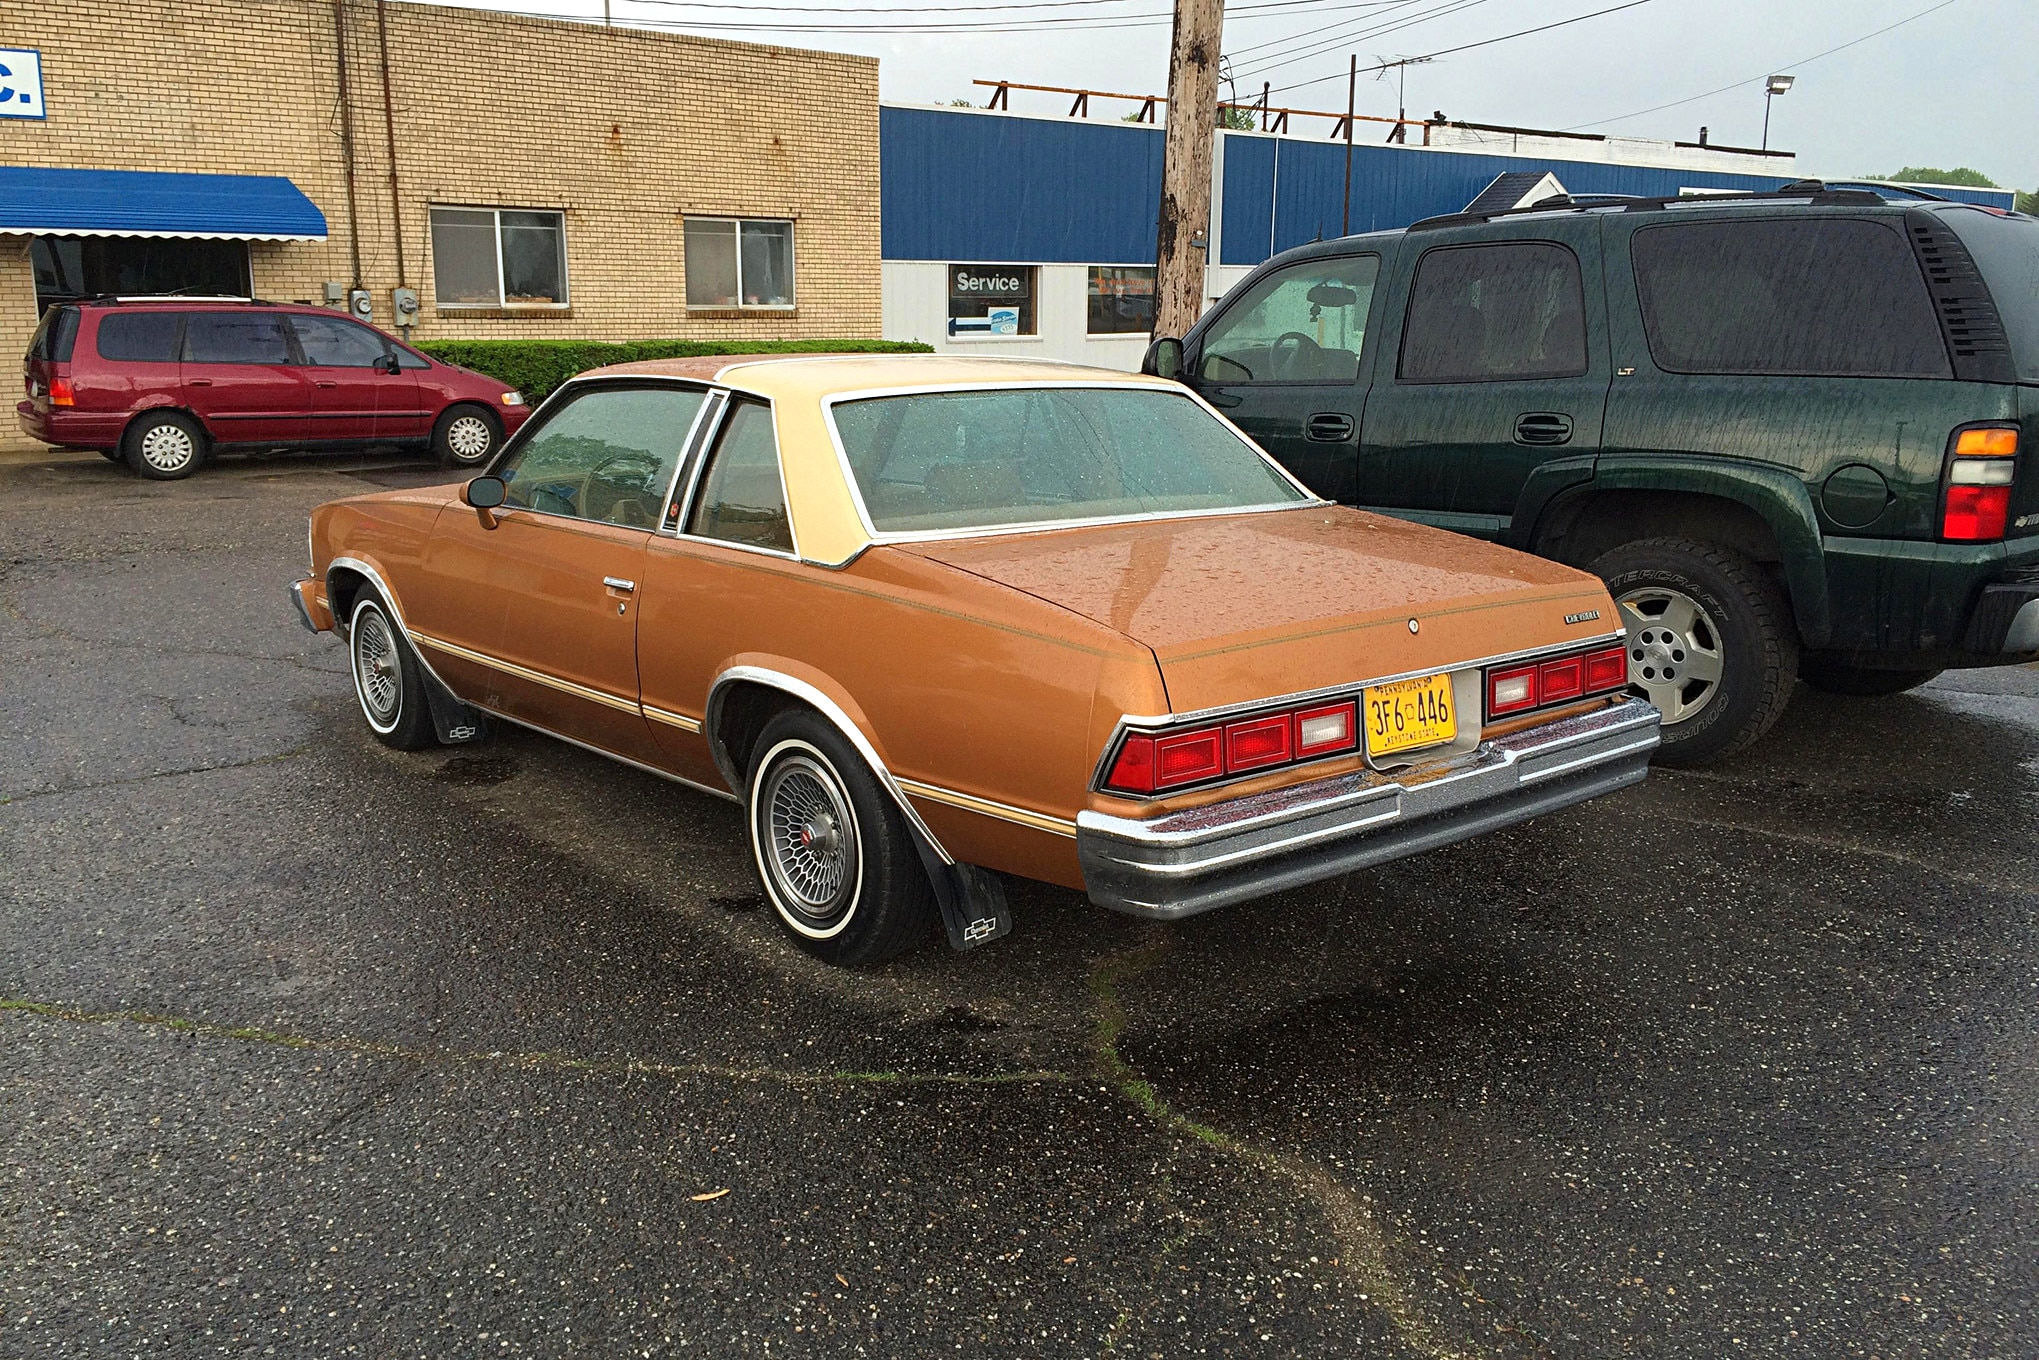 We were digging the Landau top and dealer-installed mudflaps. The car only had 68,000 miles and was looked to be rust-free, a virtually impossible feat to pull off in northeast Ohio.